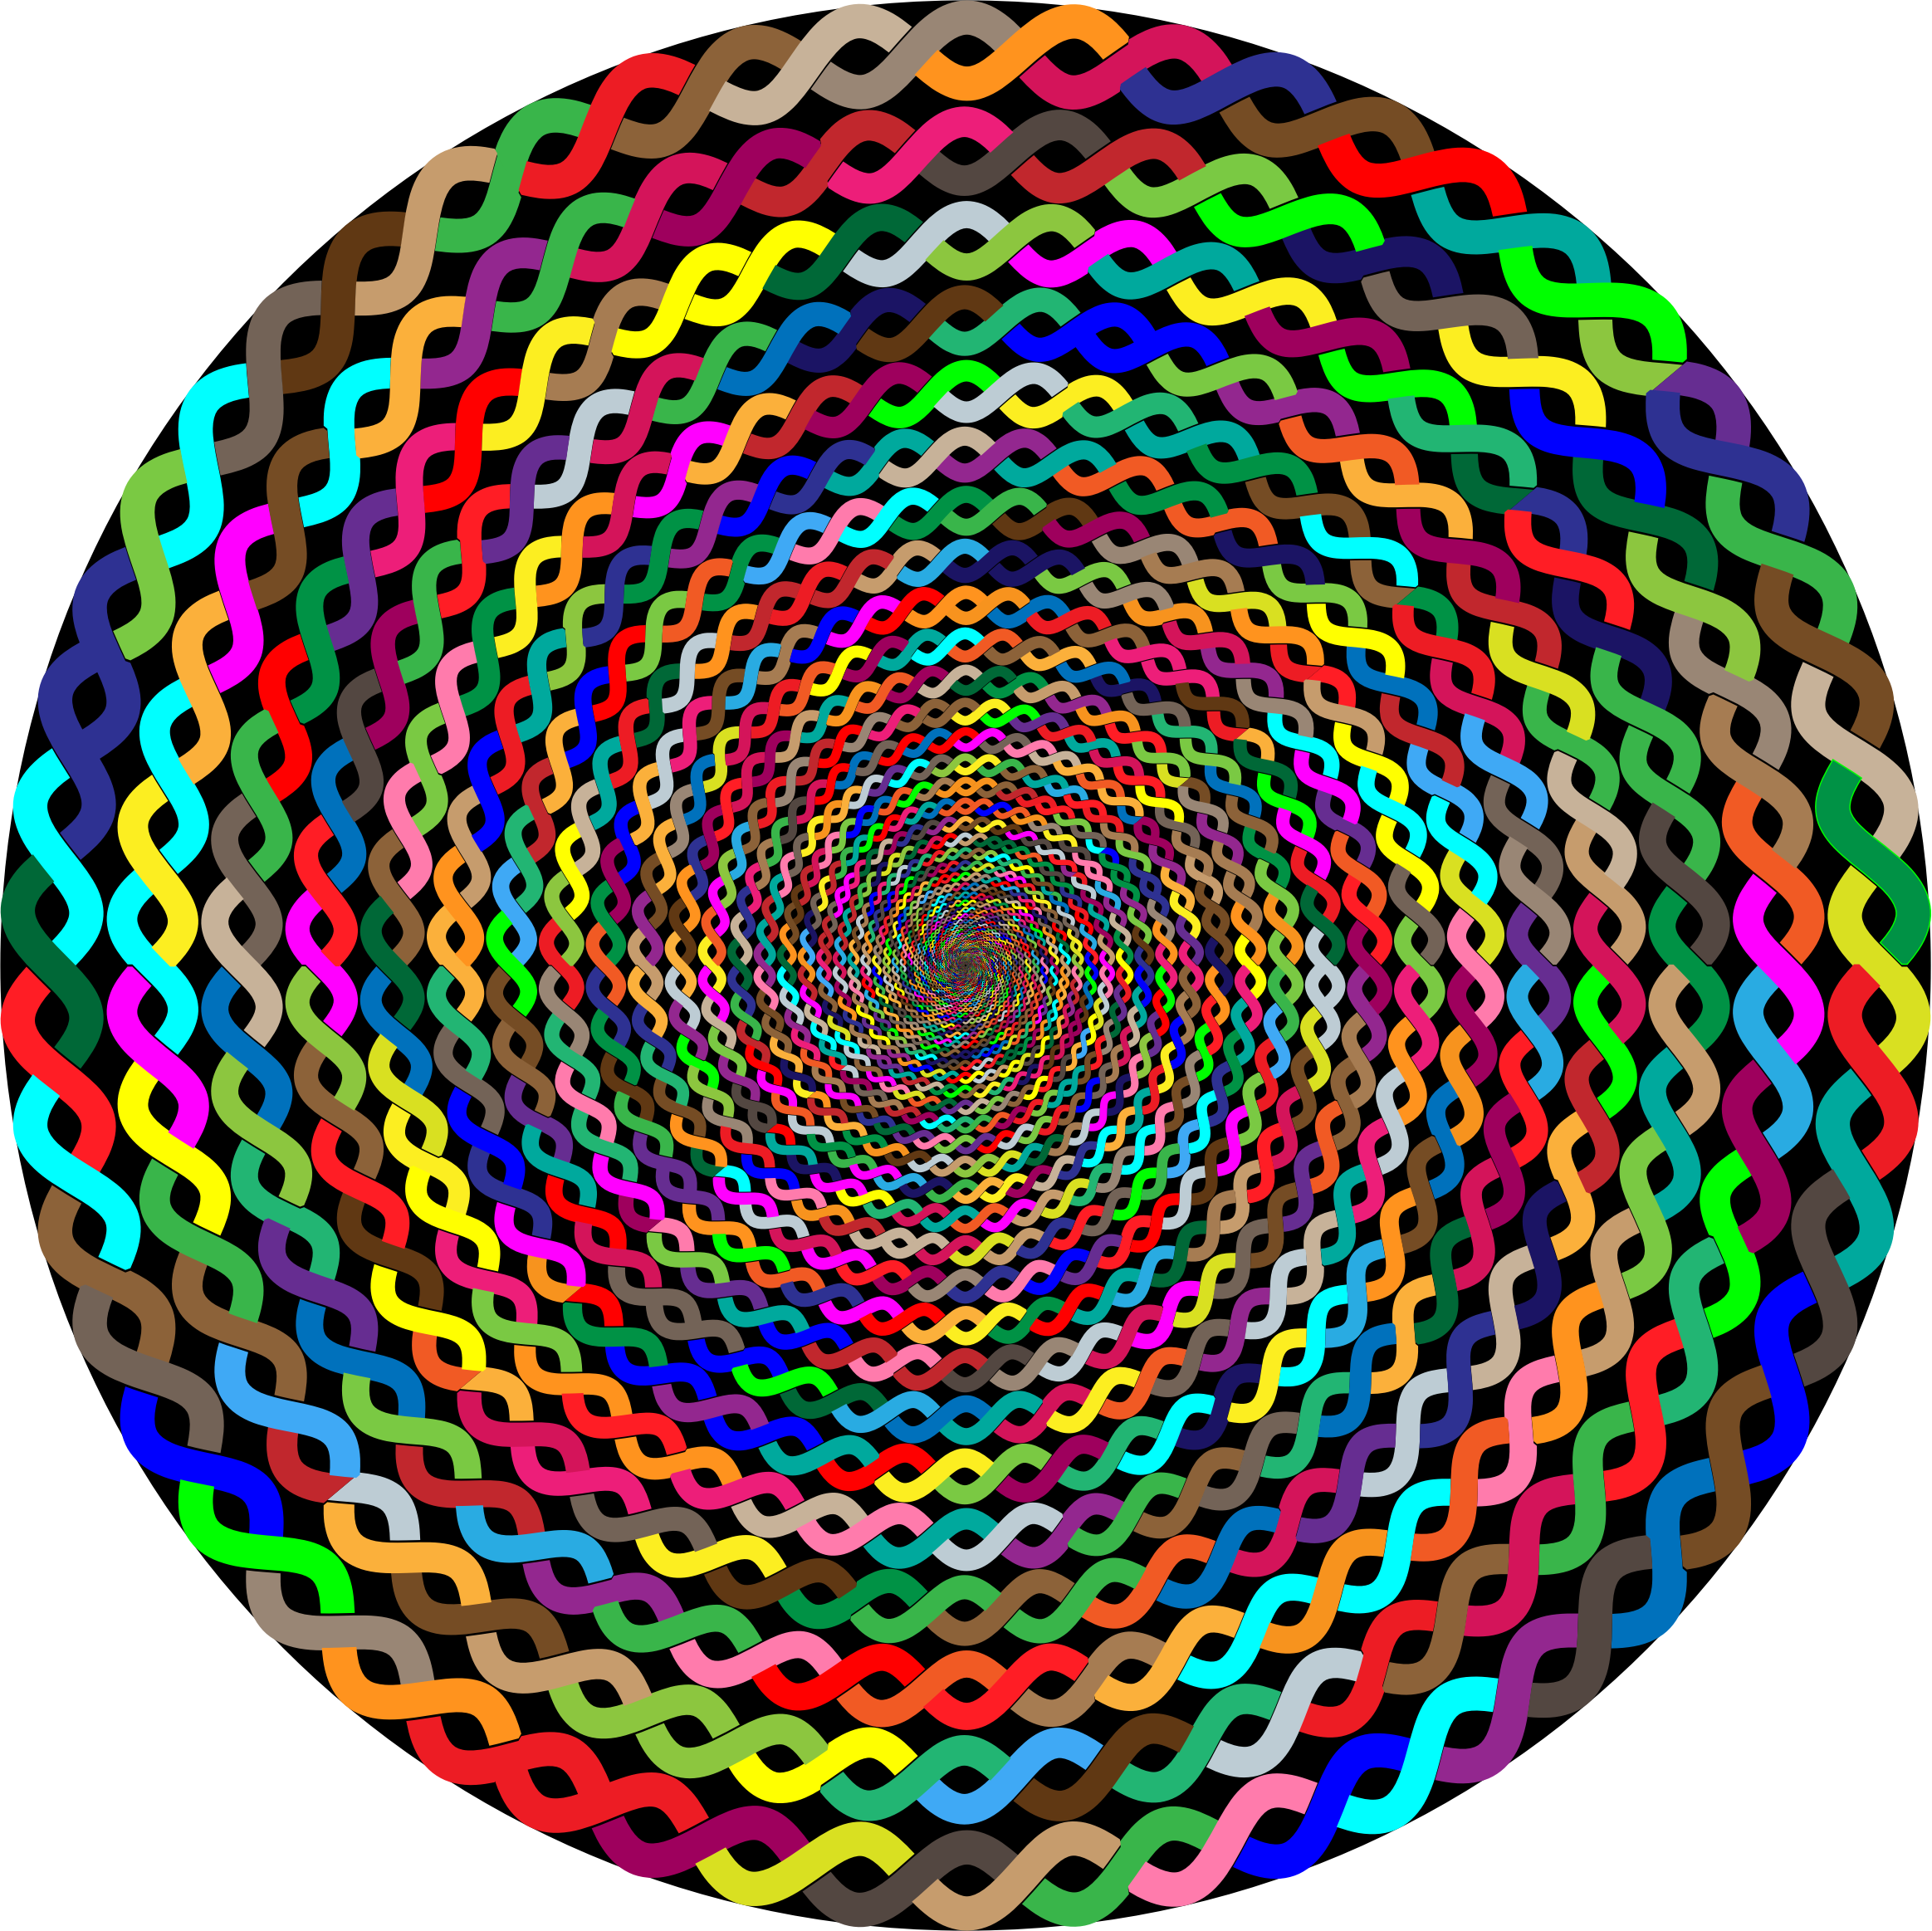 Prismatic Intertwined Circle Vortex by GDJ